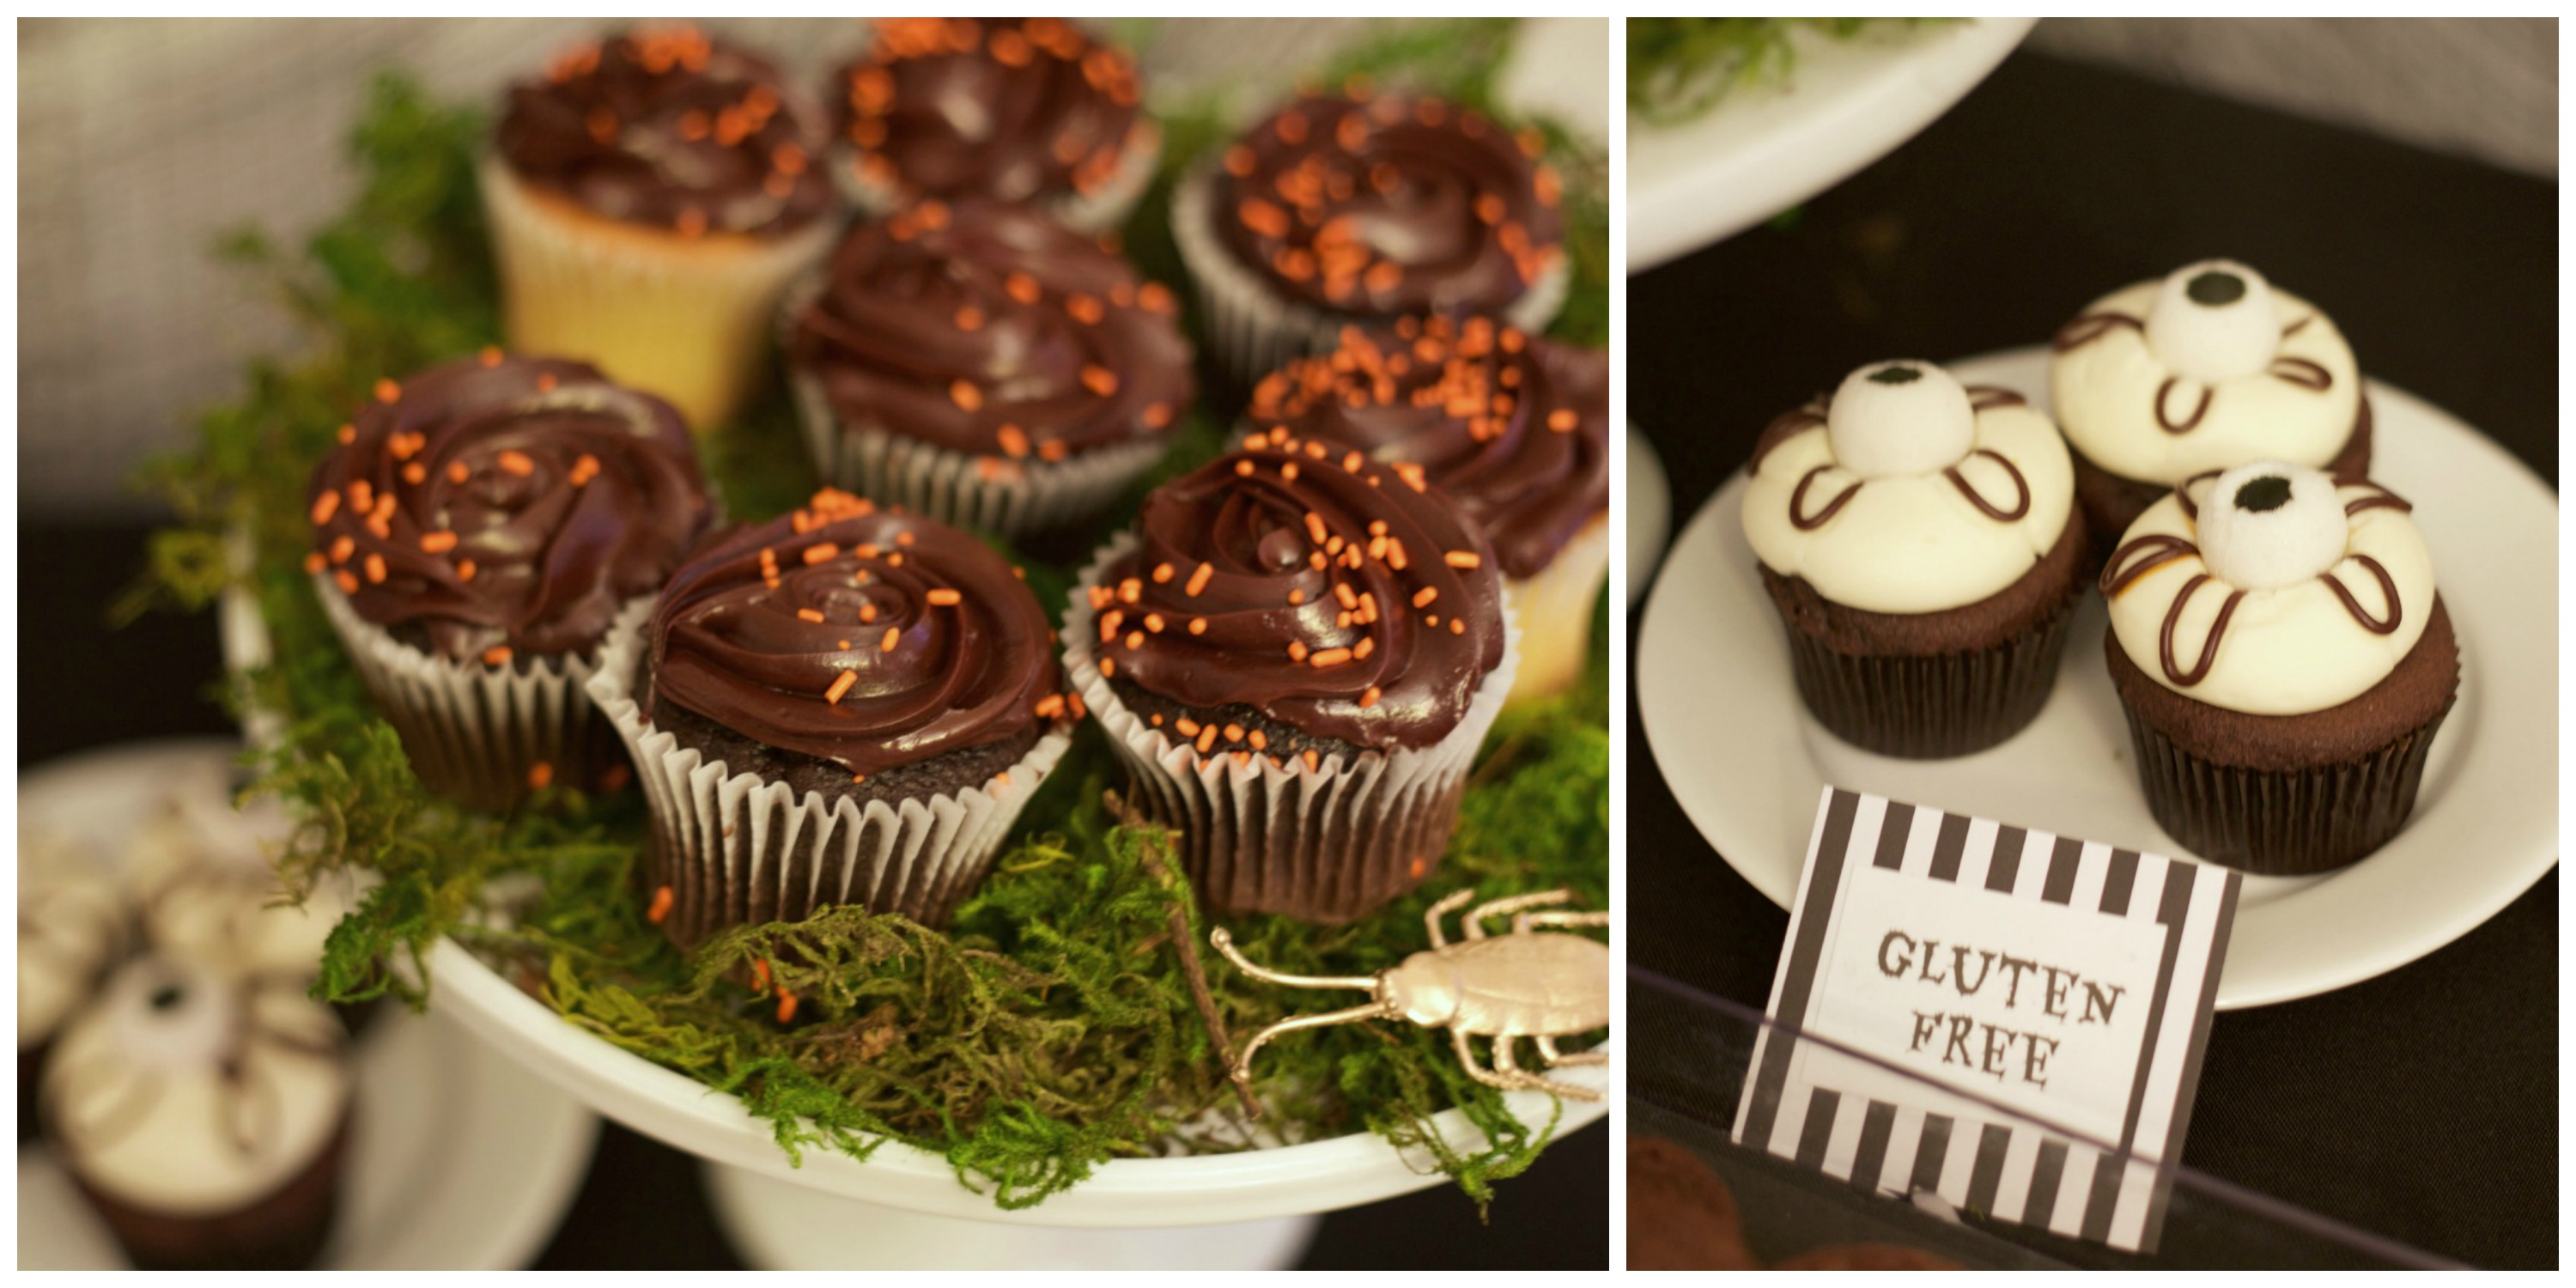 Beetlejuice Halloween Party | PartiesforPennies.com |Cupcakes